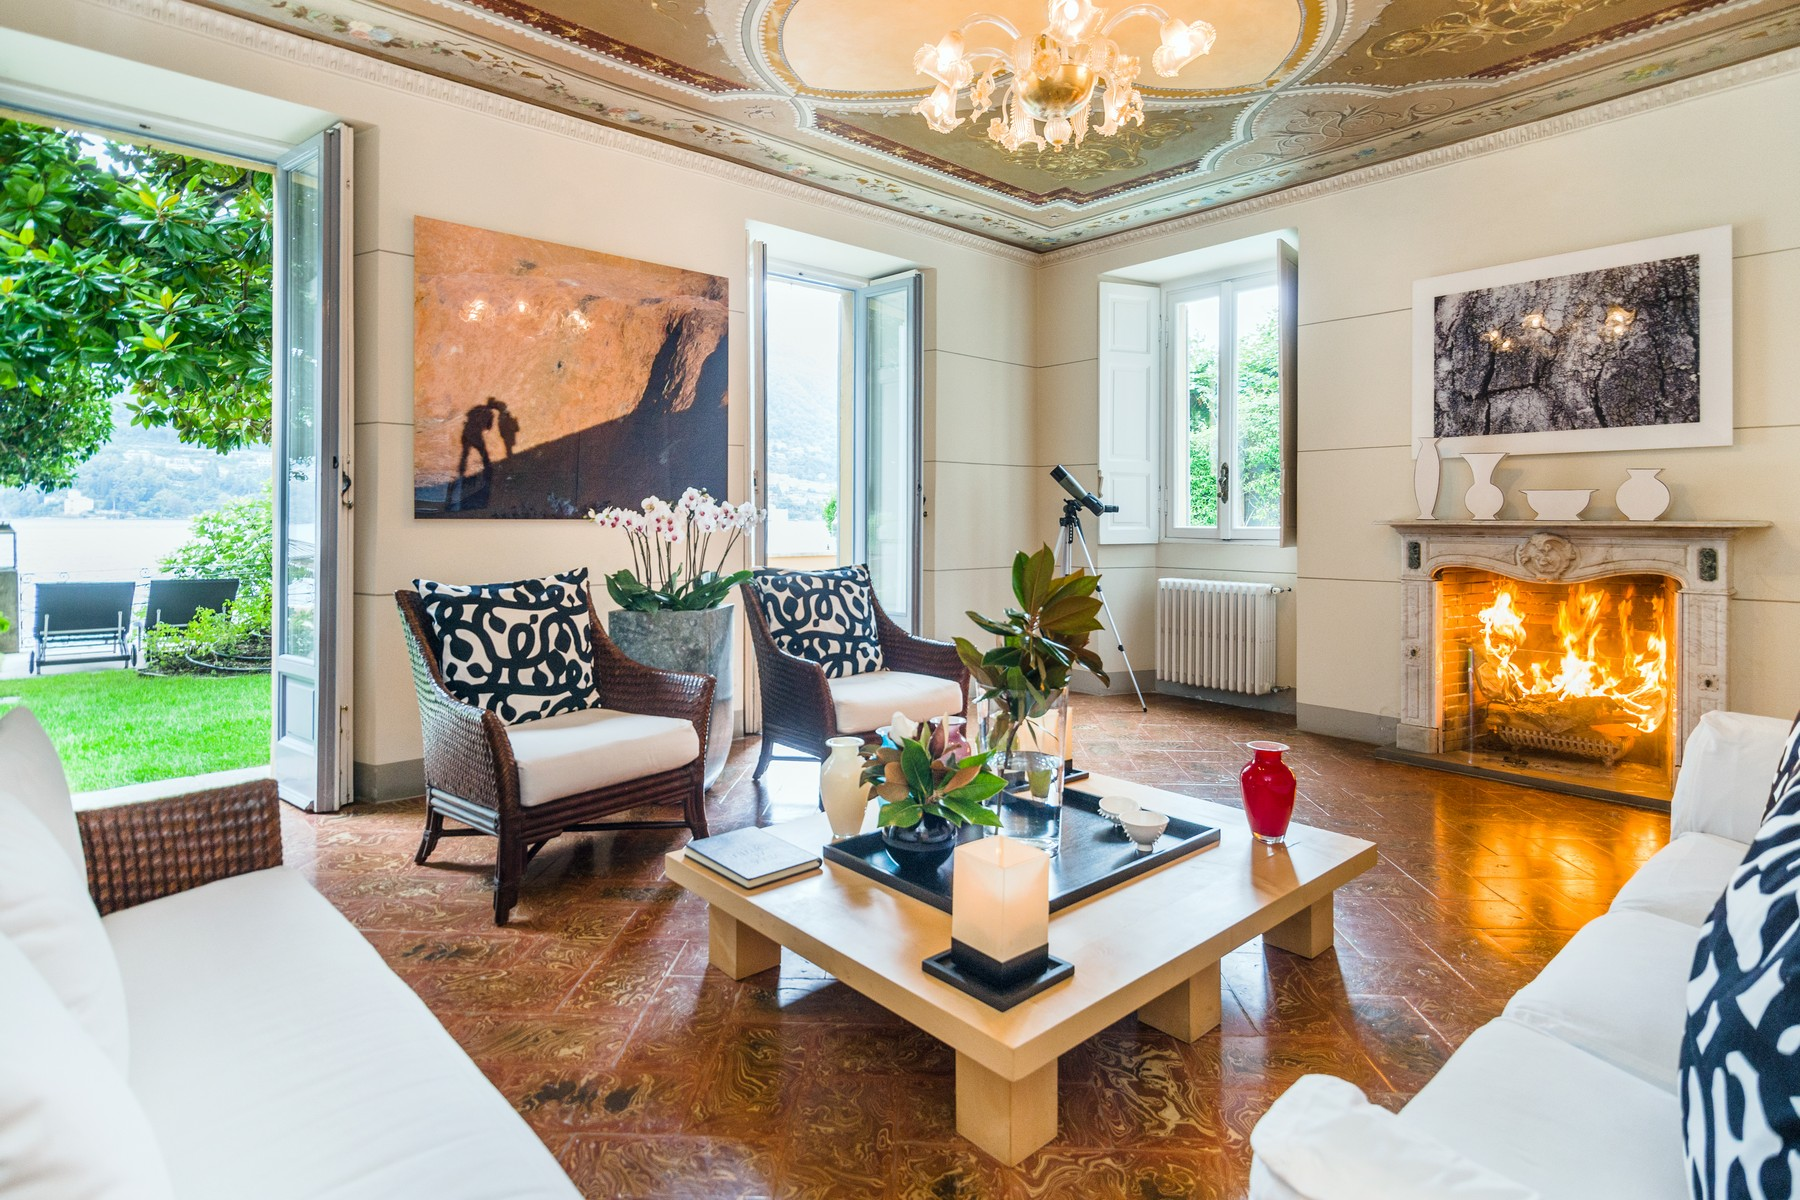 Single Family Home for Sale at Splendid 18th century villa overlooking Lake Como Via Regina Carate Urio, Como 22010 Italy